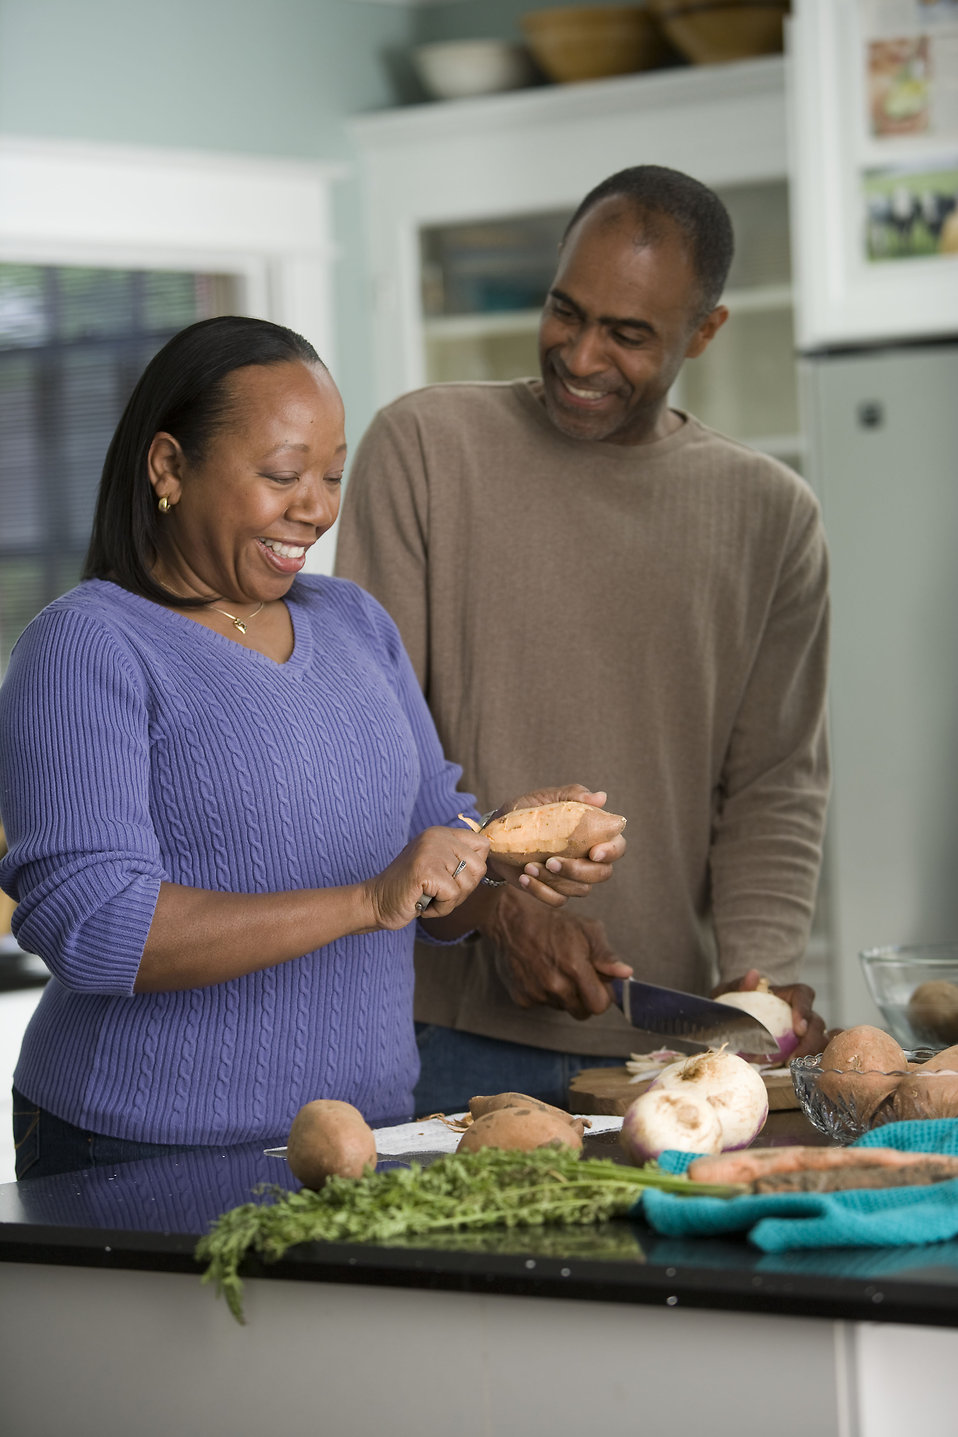 16280-an-african-american-couple-preparing-a-healthy-meal-pv.jpg